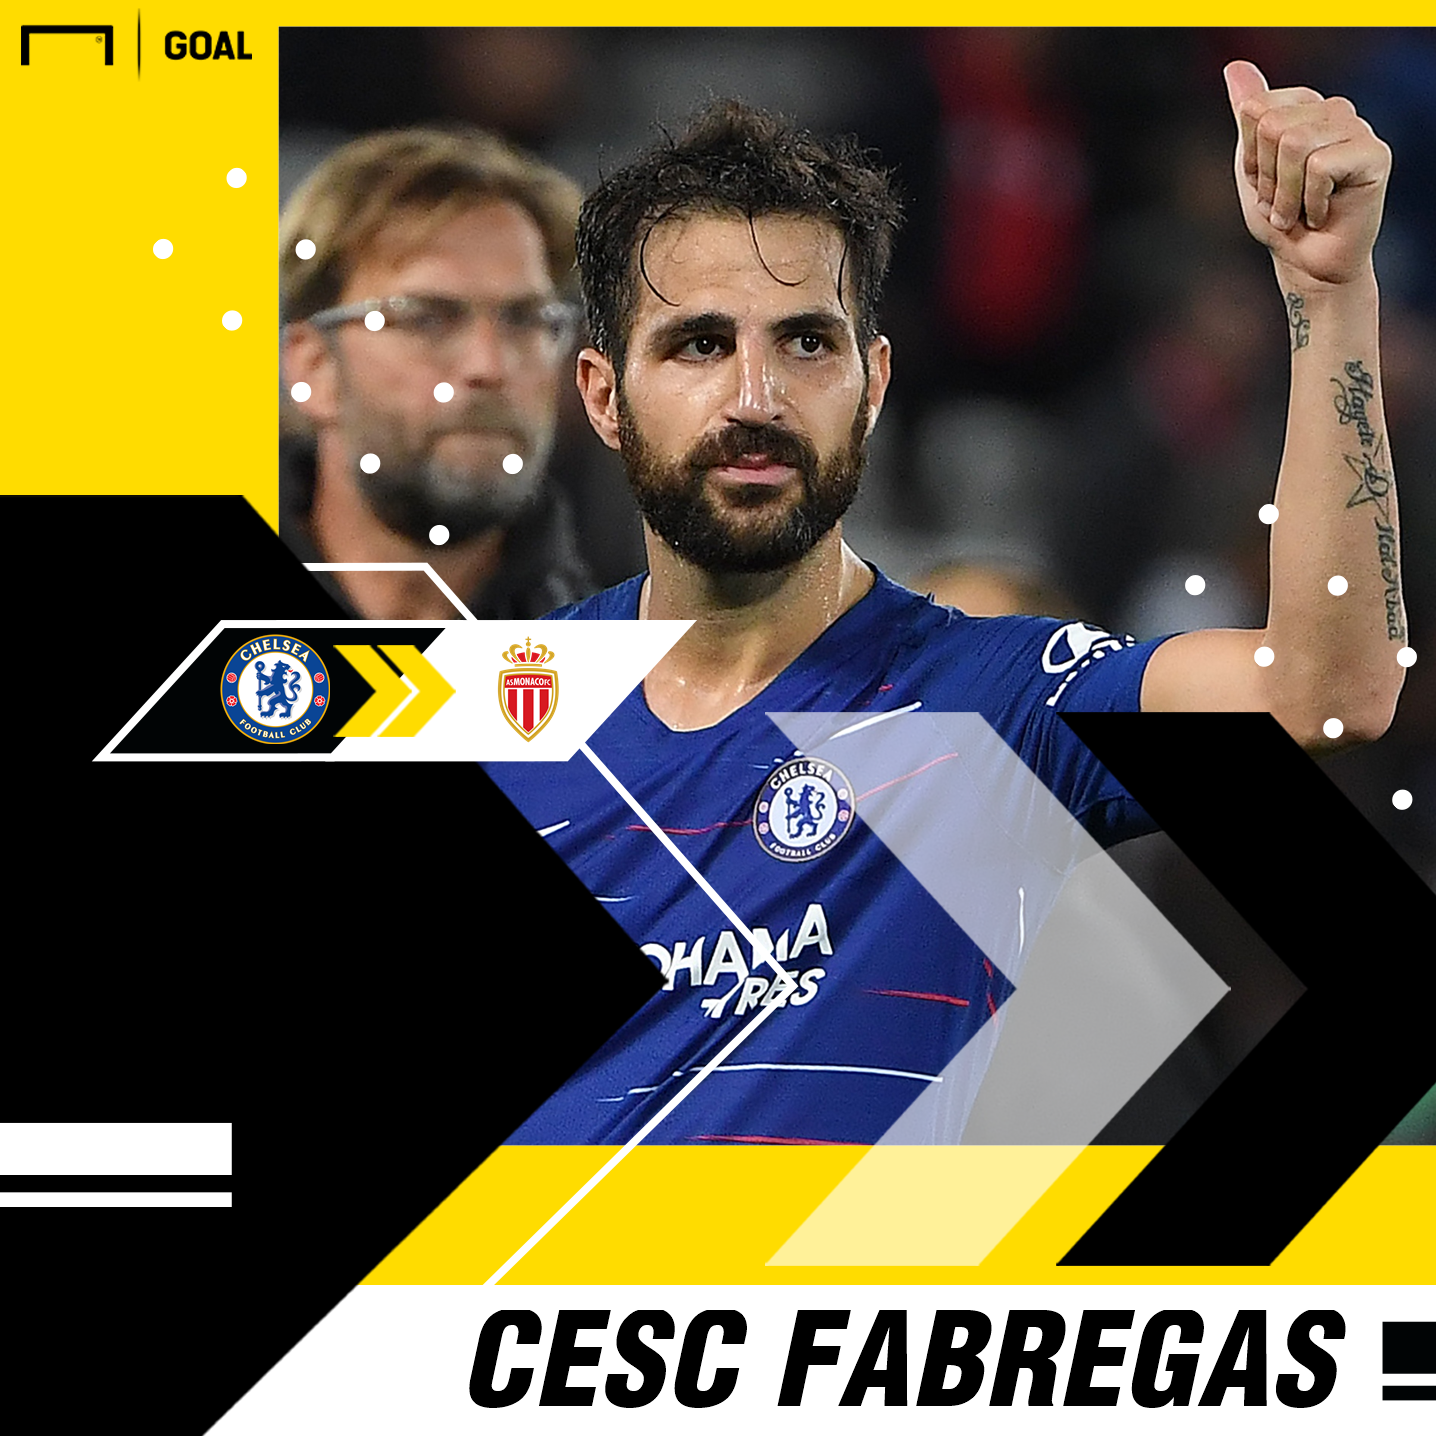 Cesc Fabregas joins AS Monaco from Chelsea